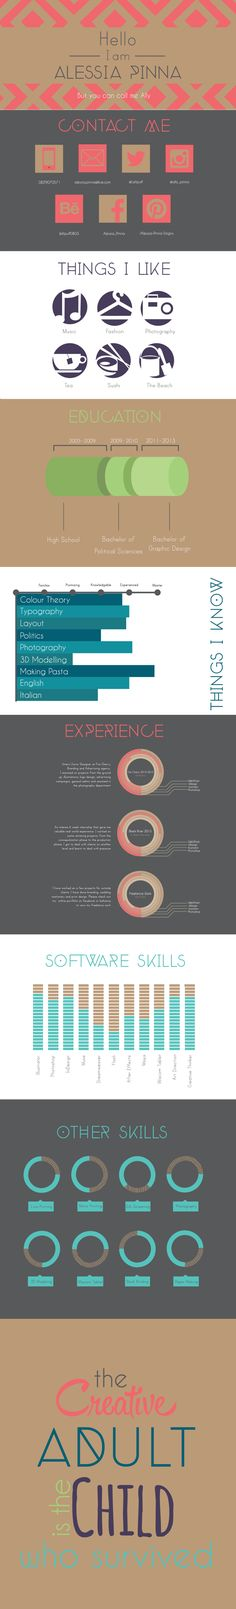 I design infographic resumes like this one - check out my portfolio of creative…